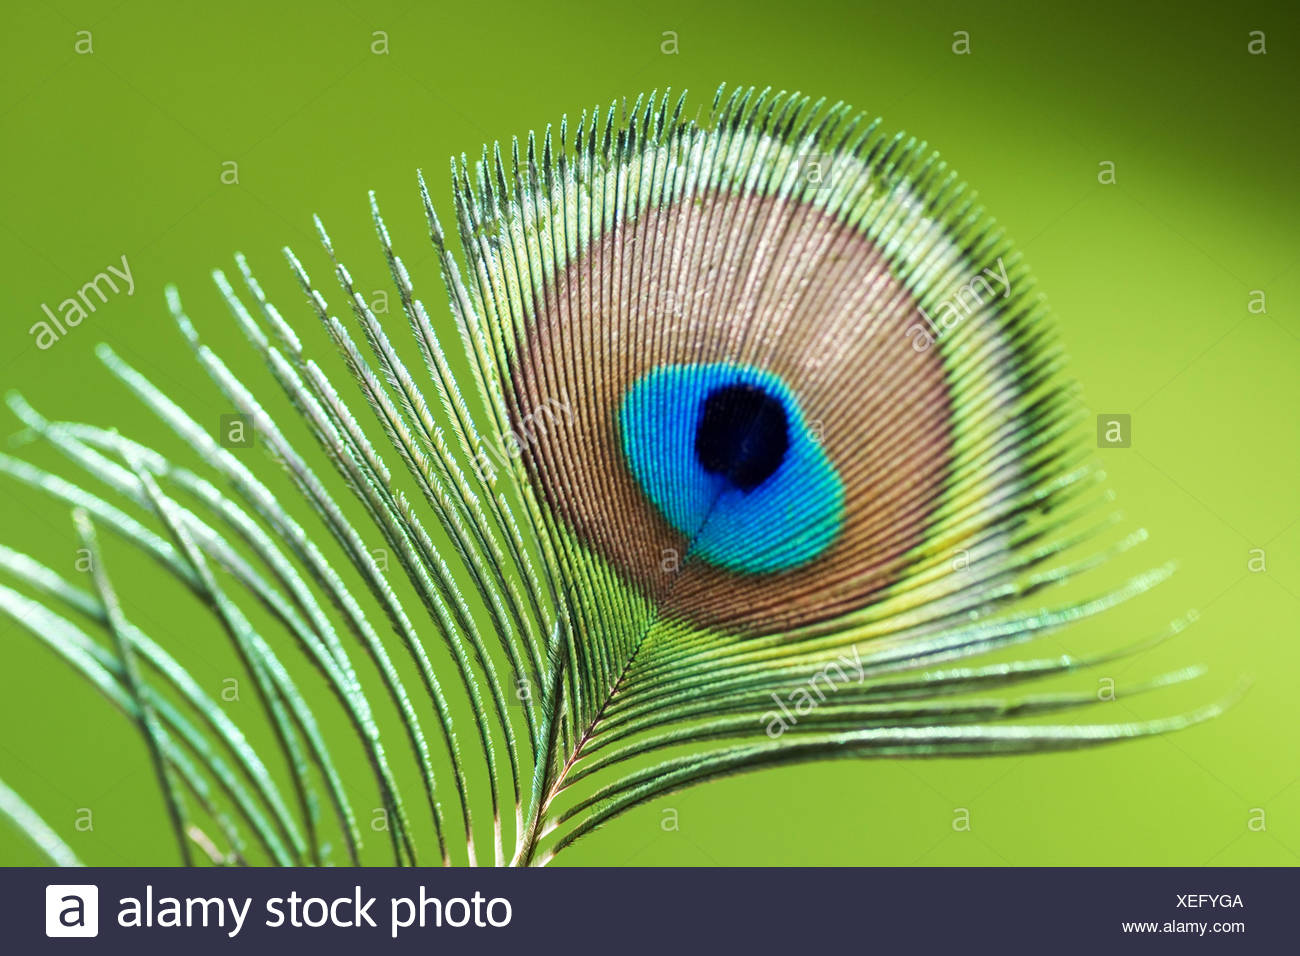 common peafowl (Pavo cristatus), detail of a pinna of a male peacock Stock Photo